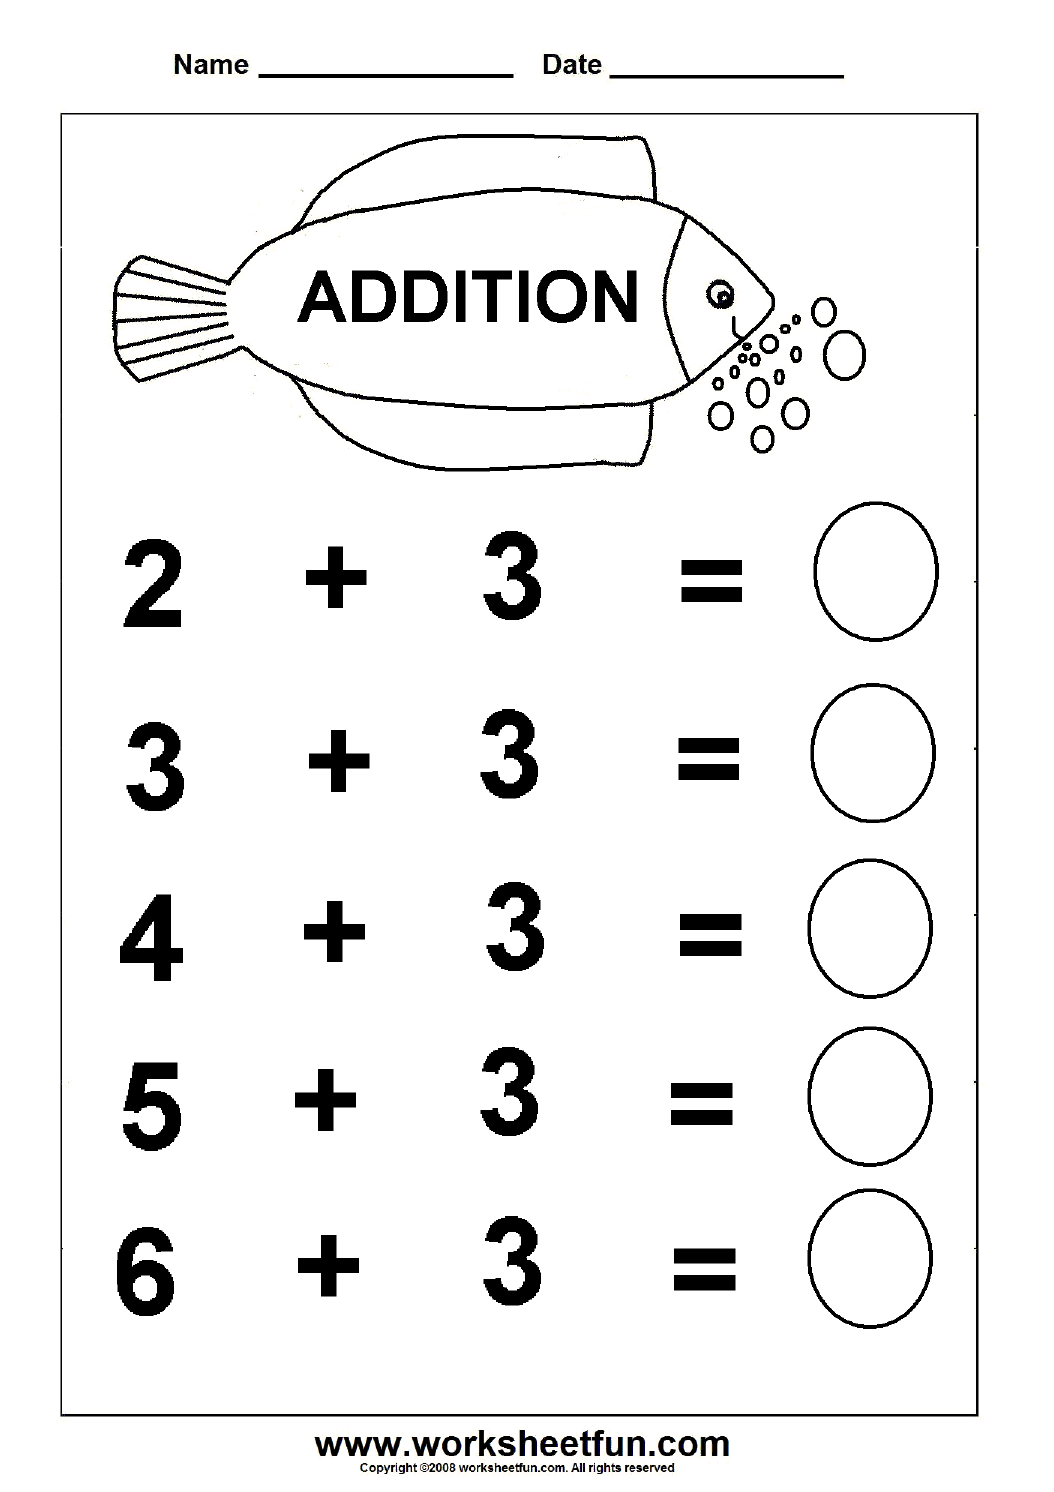 addition 6 worksheets printable worksheets pinterest worksheets math and kindergarten. Black Bedroom Furniture Sets. Home Design Ideas